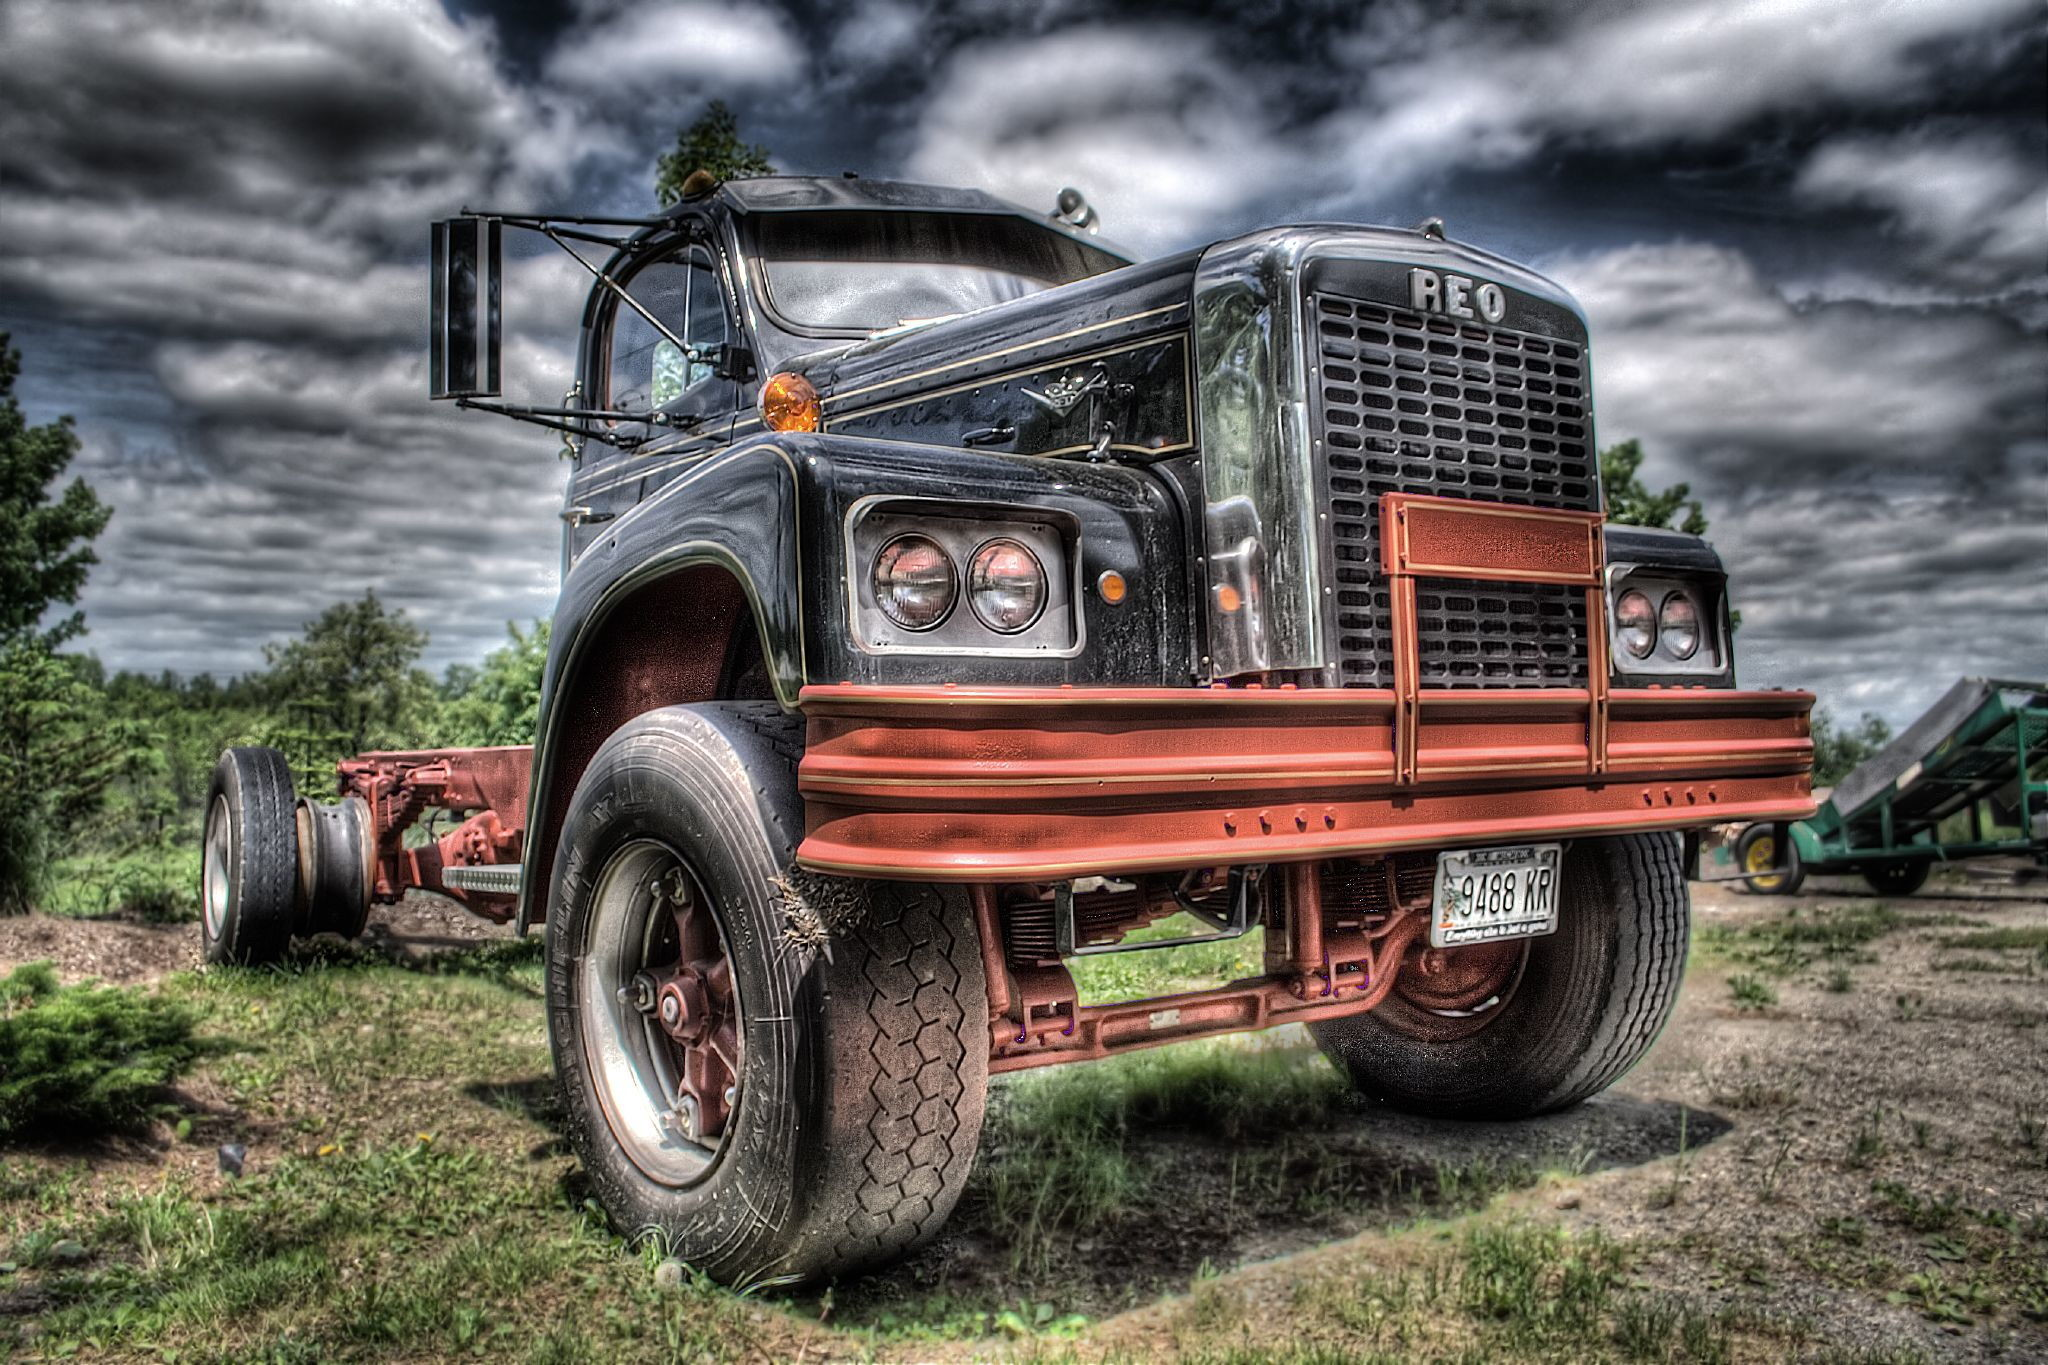 Old trucking company photos